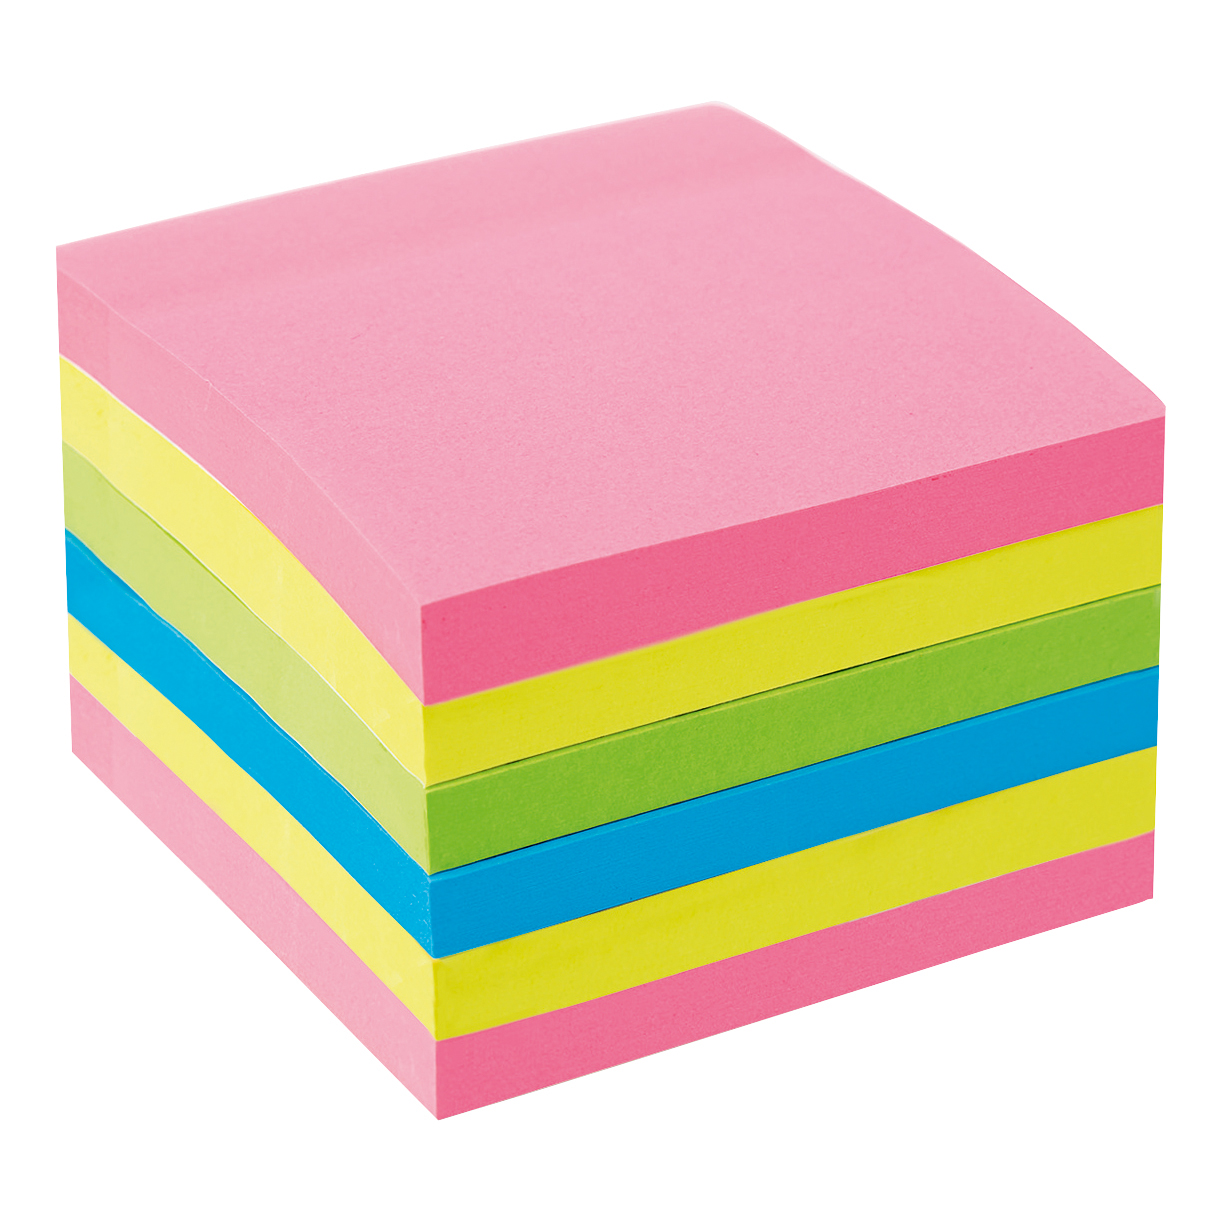 5 Star Office Extra Sticky Re-Move Notes Pad of 90 Sheets 76x76mm 4 Assorted Neon Colours Pack 6